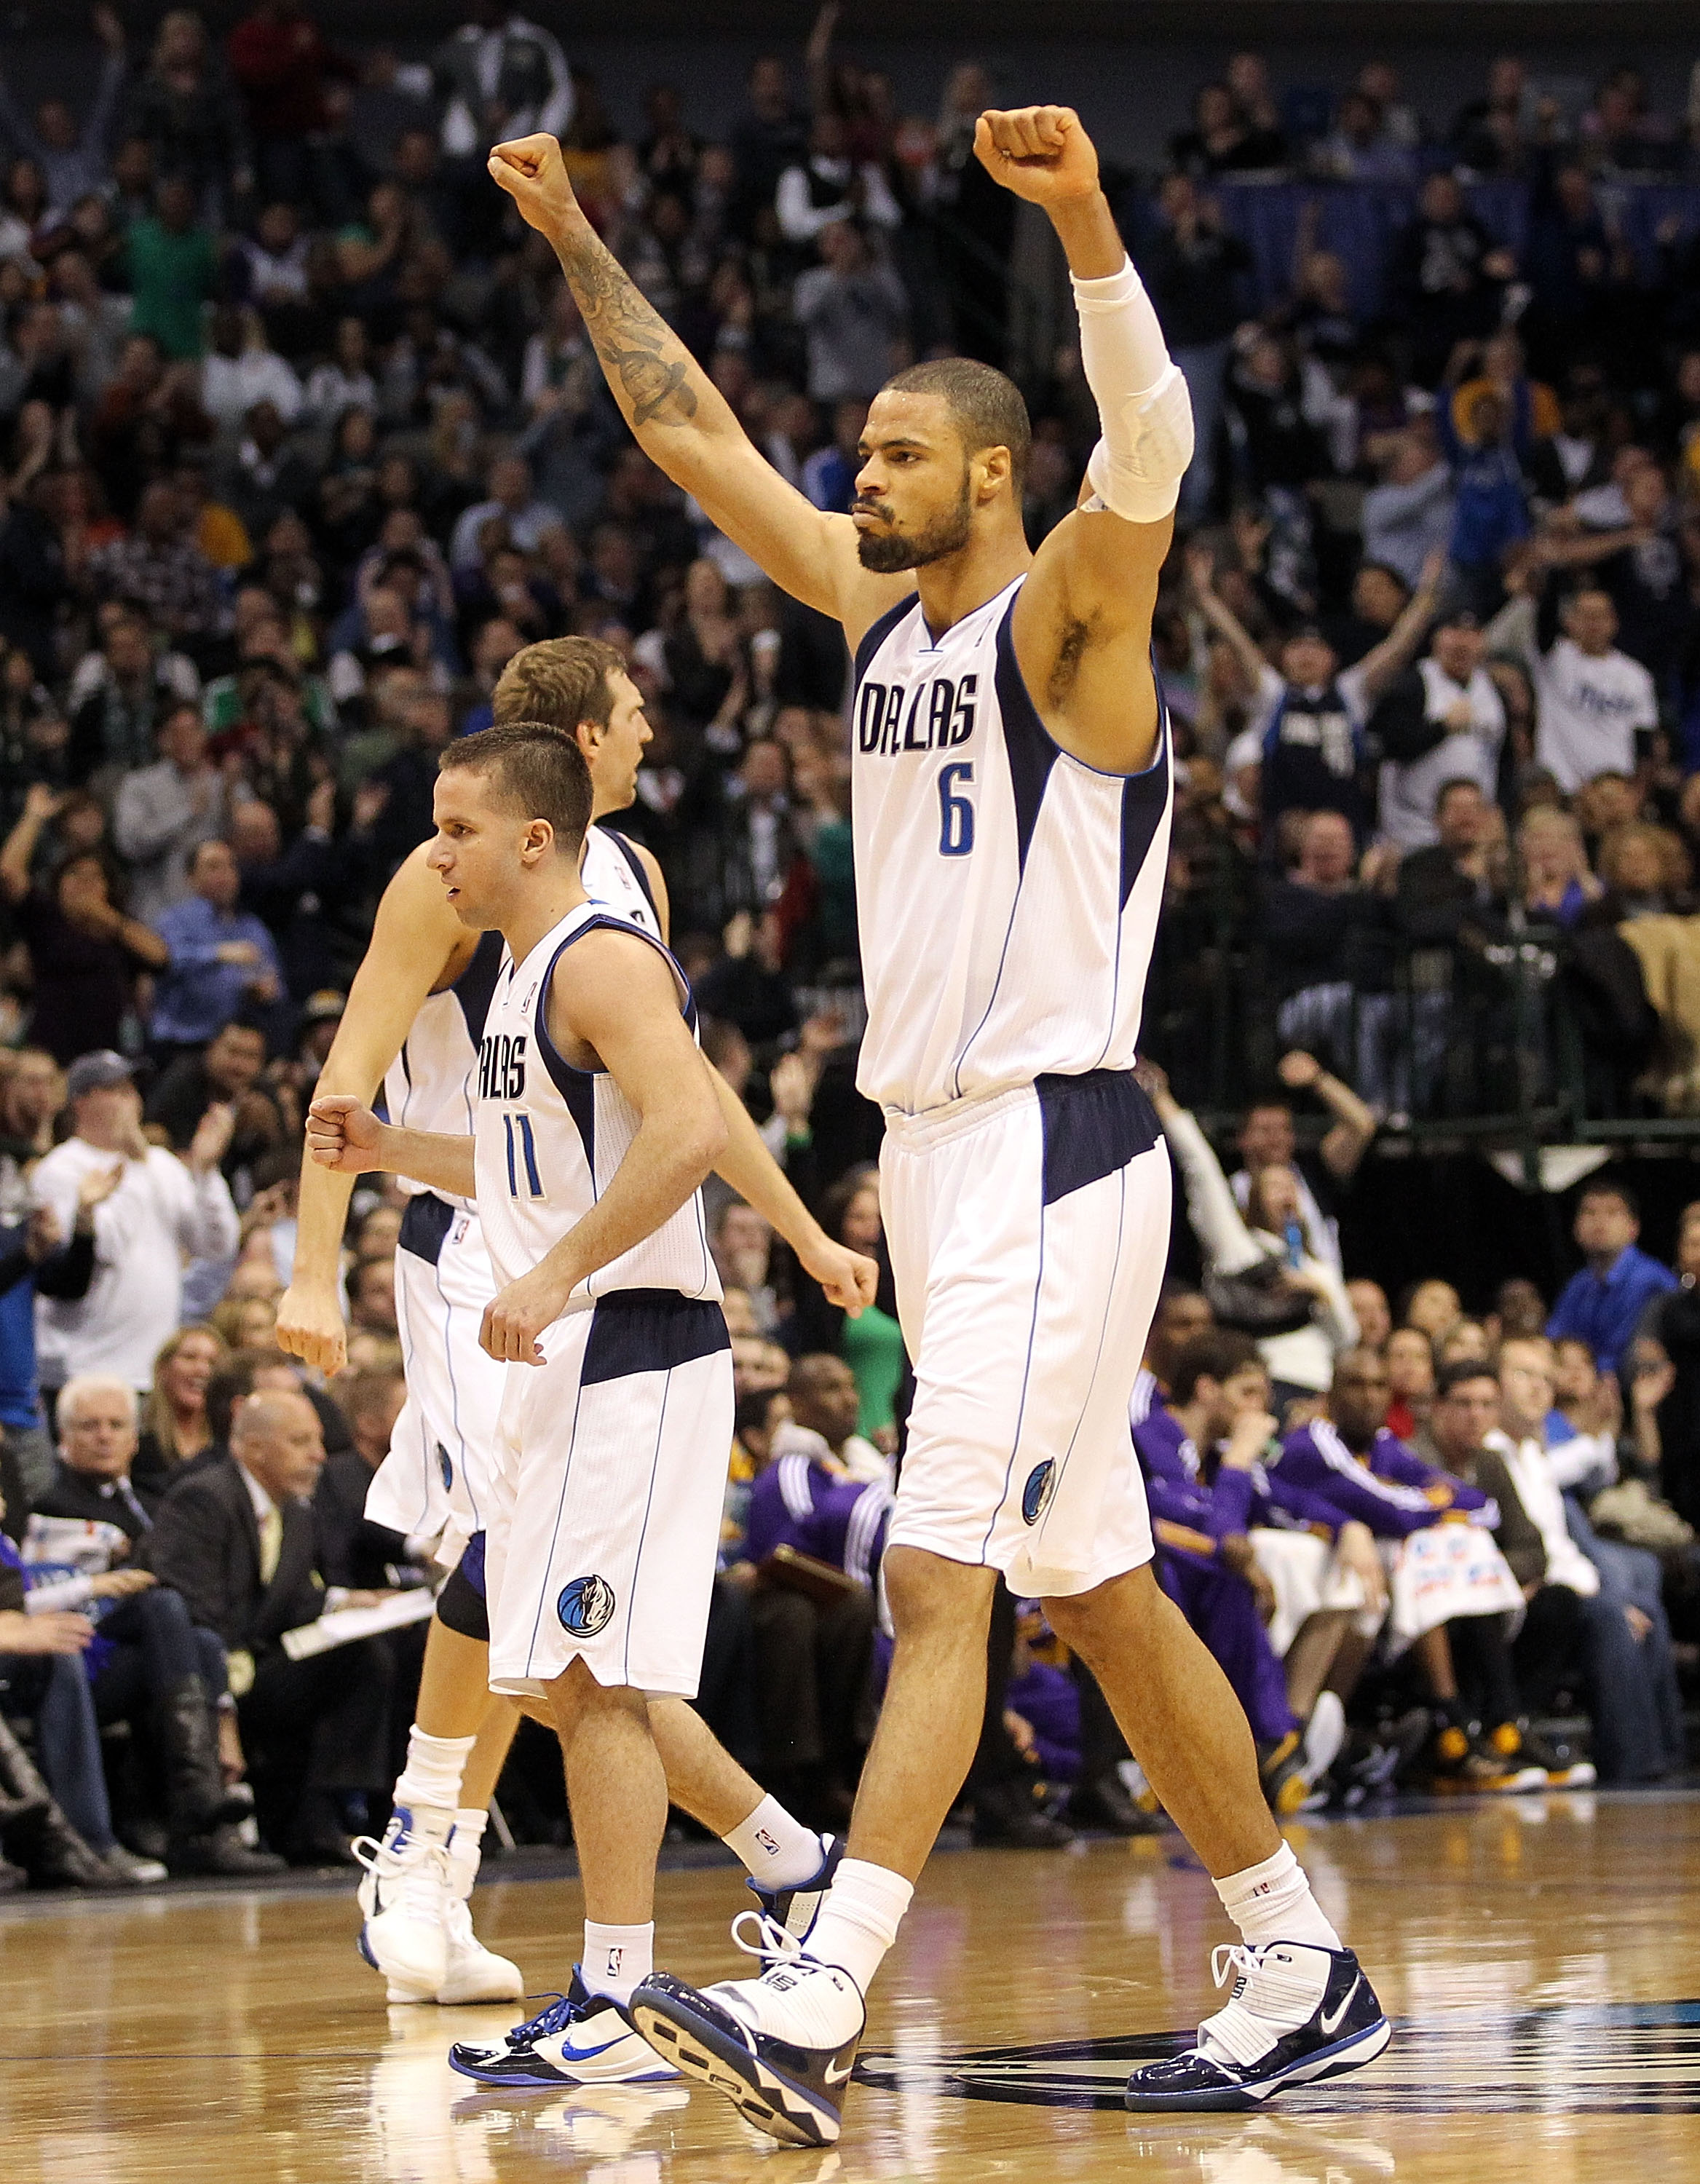 DALLAS, TX - JANUARY 19:  Tyson Chandler #6 of the Dallas Mavericks reacts during play against the Los Angeles Lakers at American Airlines Center on January 19, 2011 in Dallas, Texas.  NOTE TO USER: User expressly acknowledges and agrees that, by download